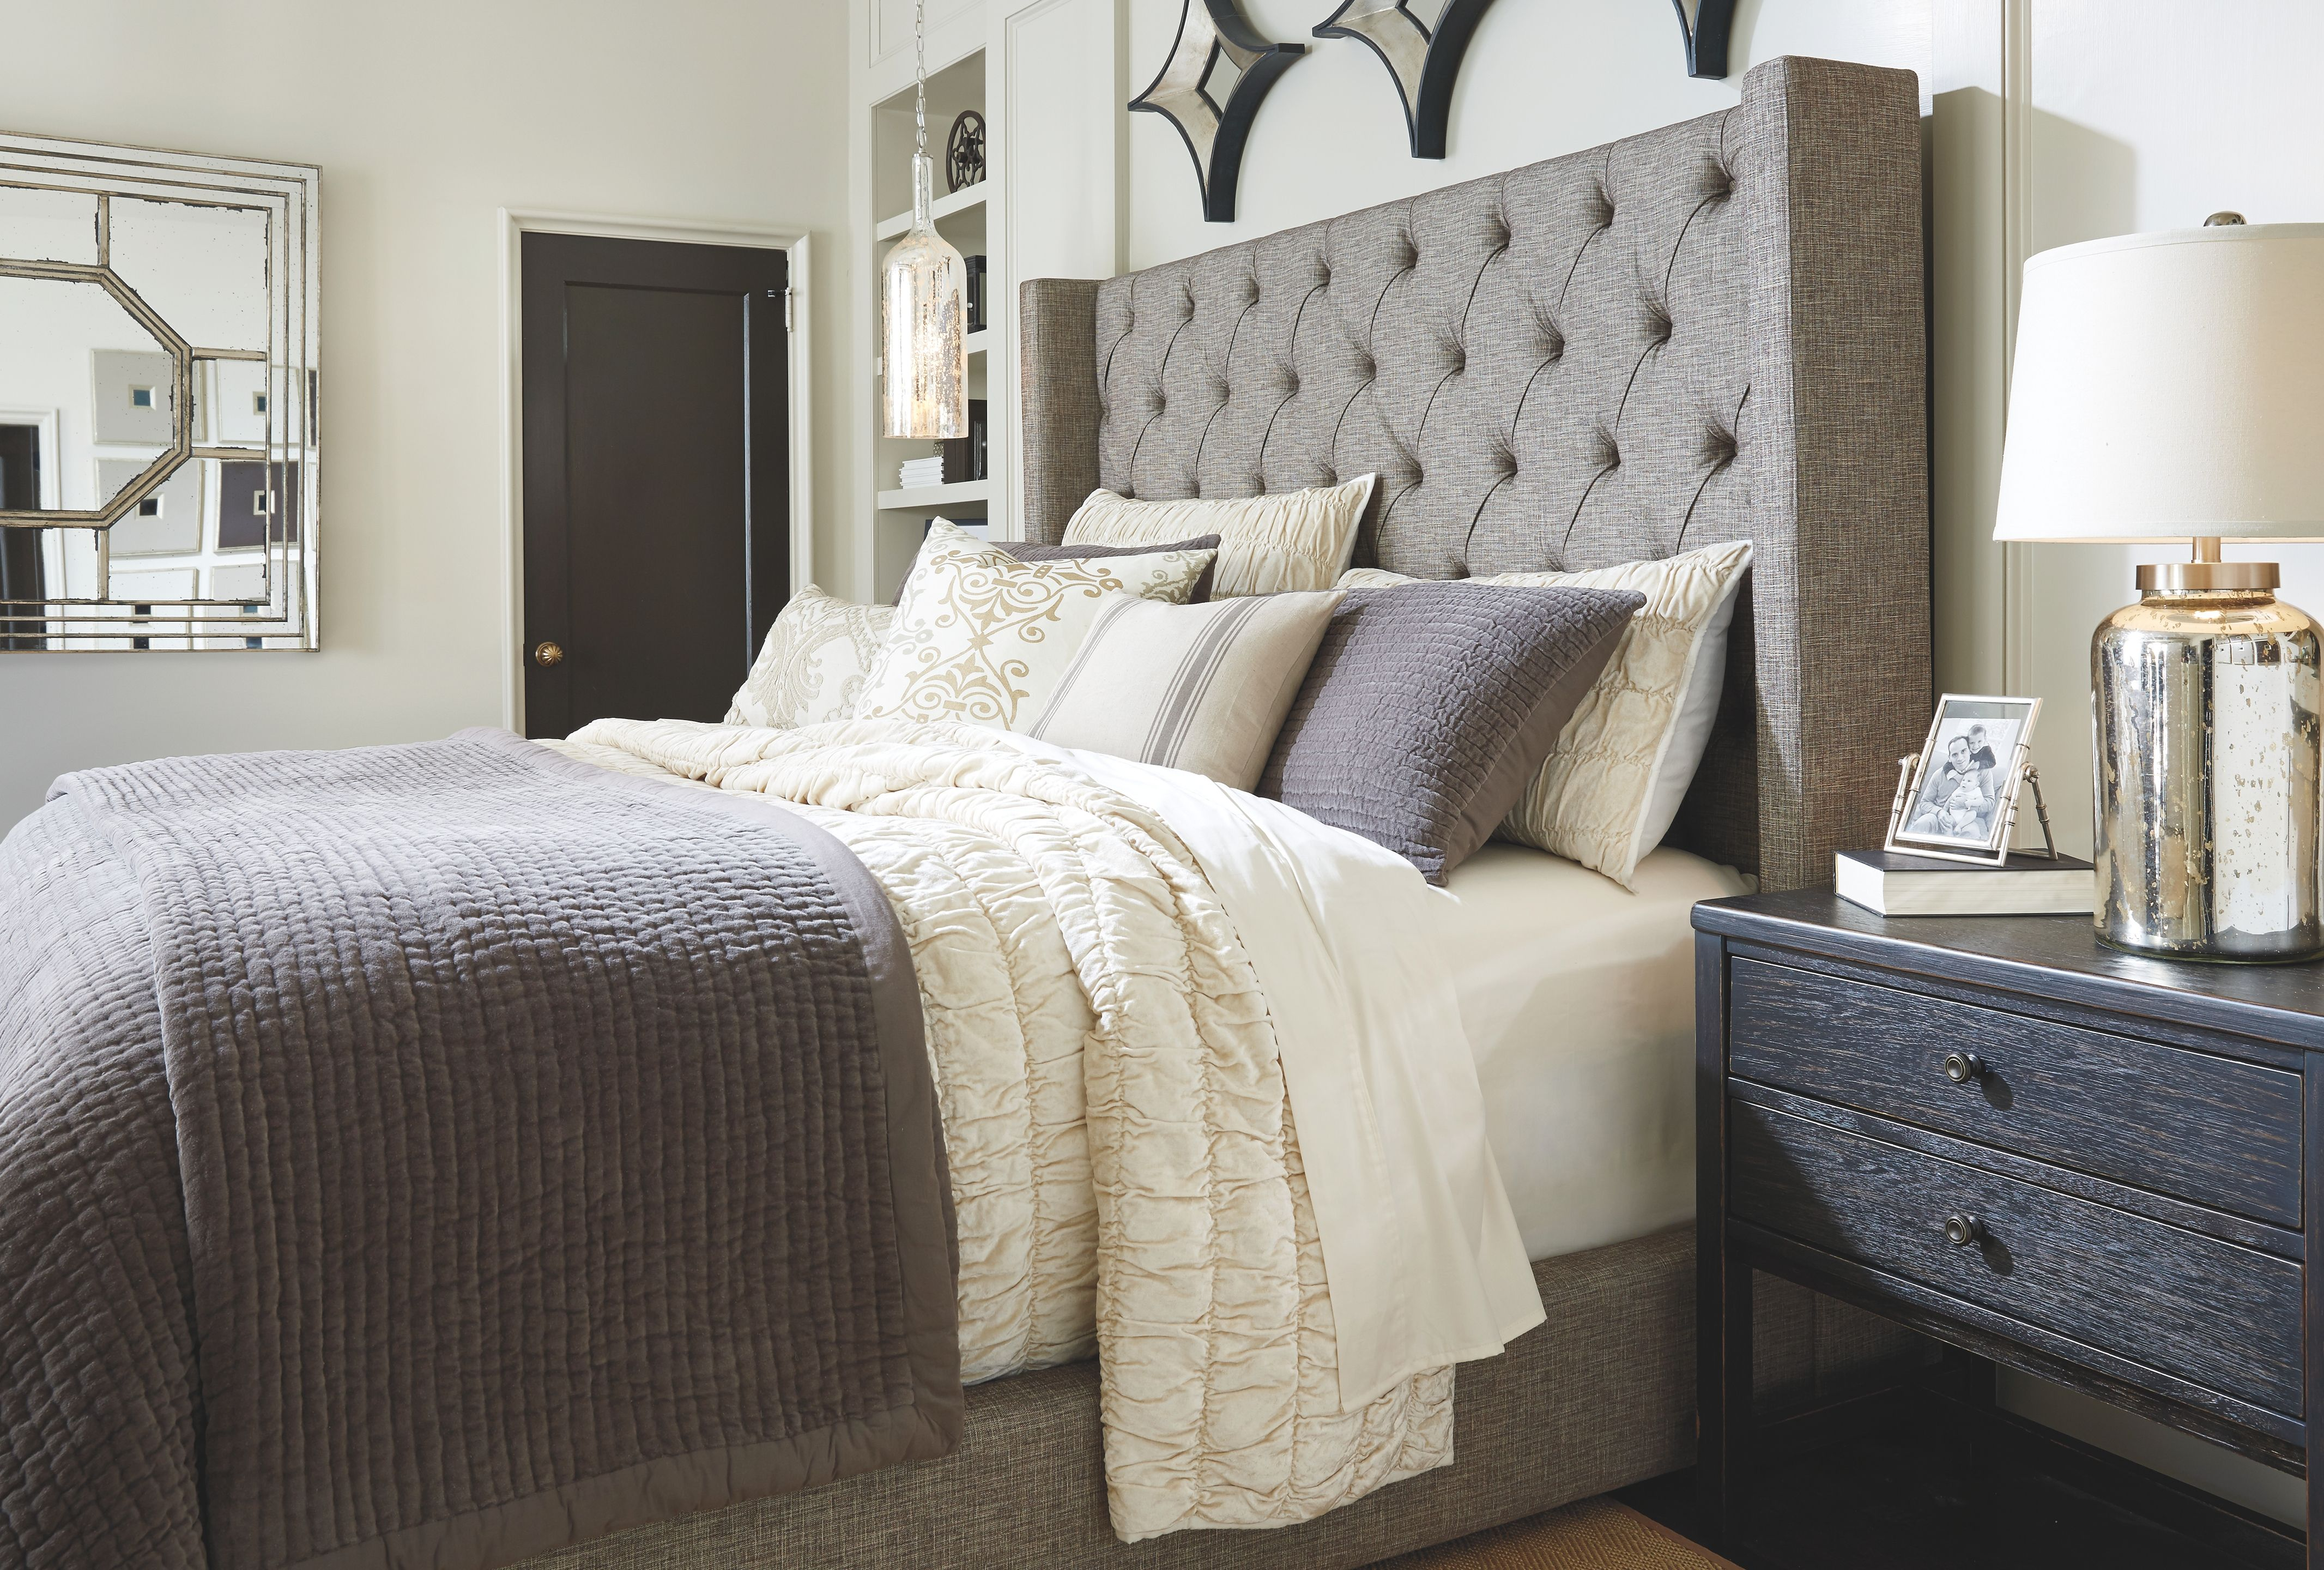 Sorinella California King Upholstered Bed Gray King Upholstered Bed Queen Upholstered Bed